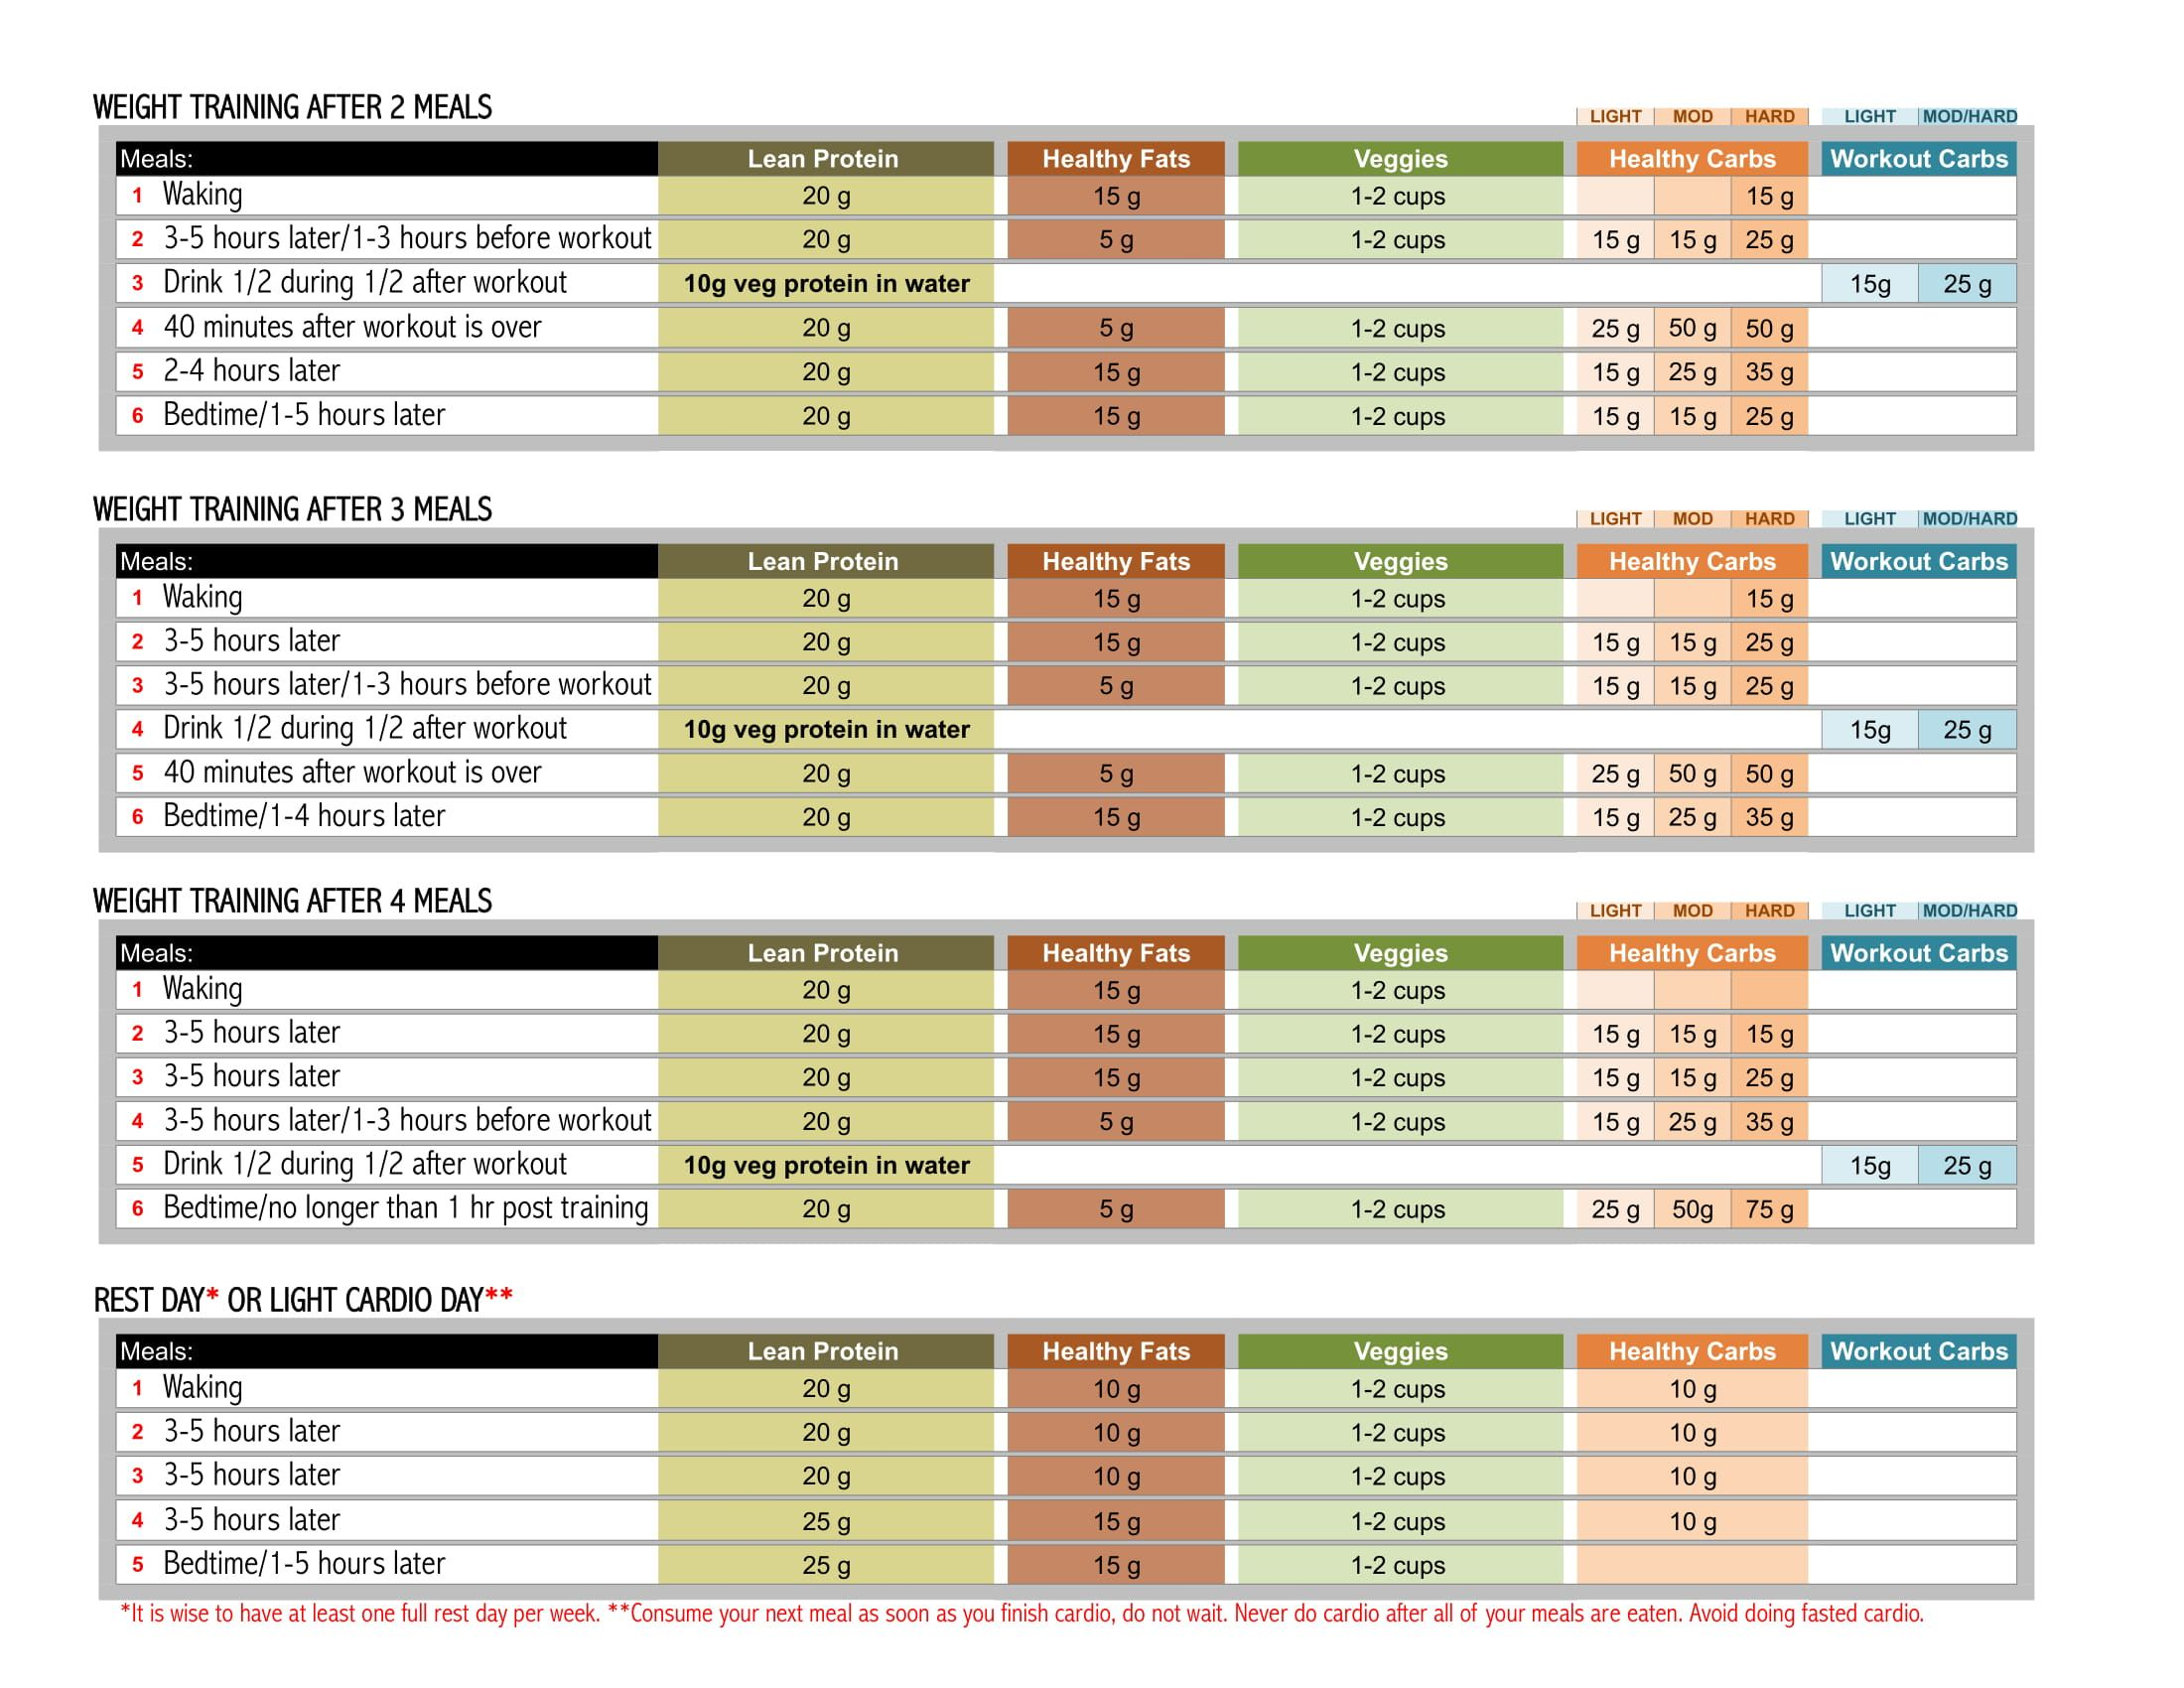 rp diet training after 3 meals plan